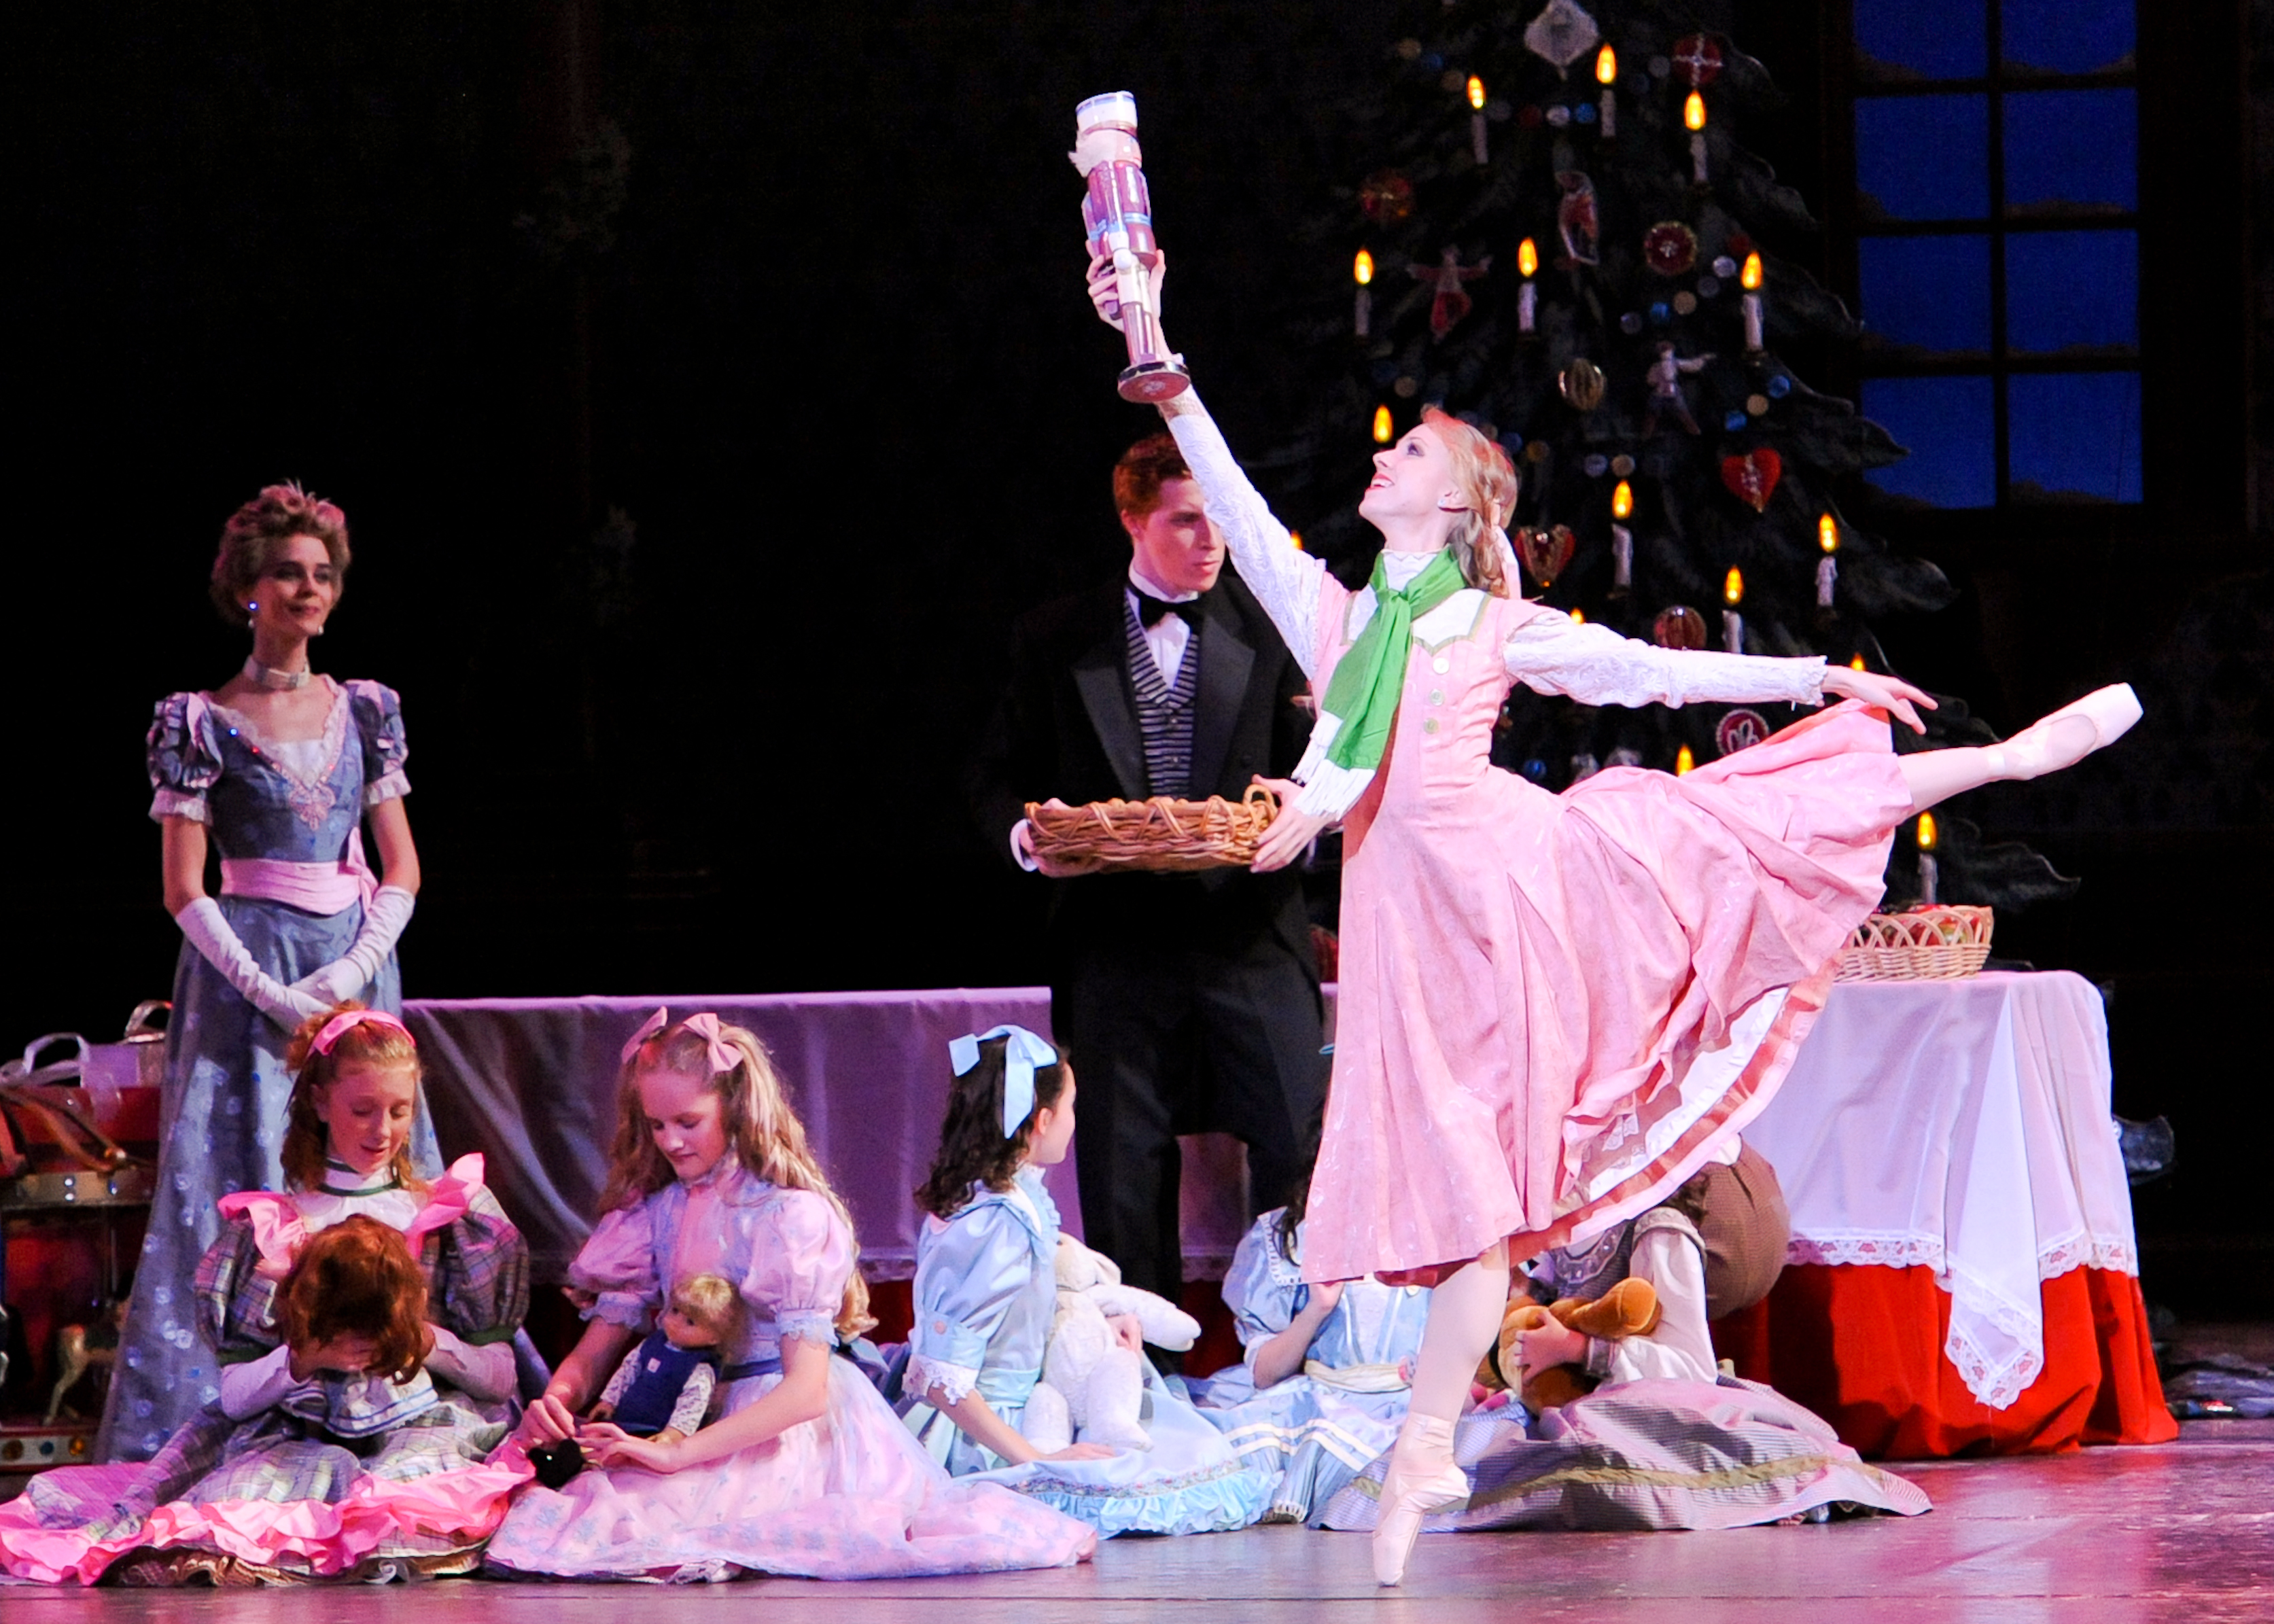 It's Christmas in Pittsburgh circa the 1890s in PBT's unique production of 'The Nutcracker.'